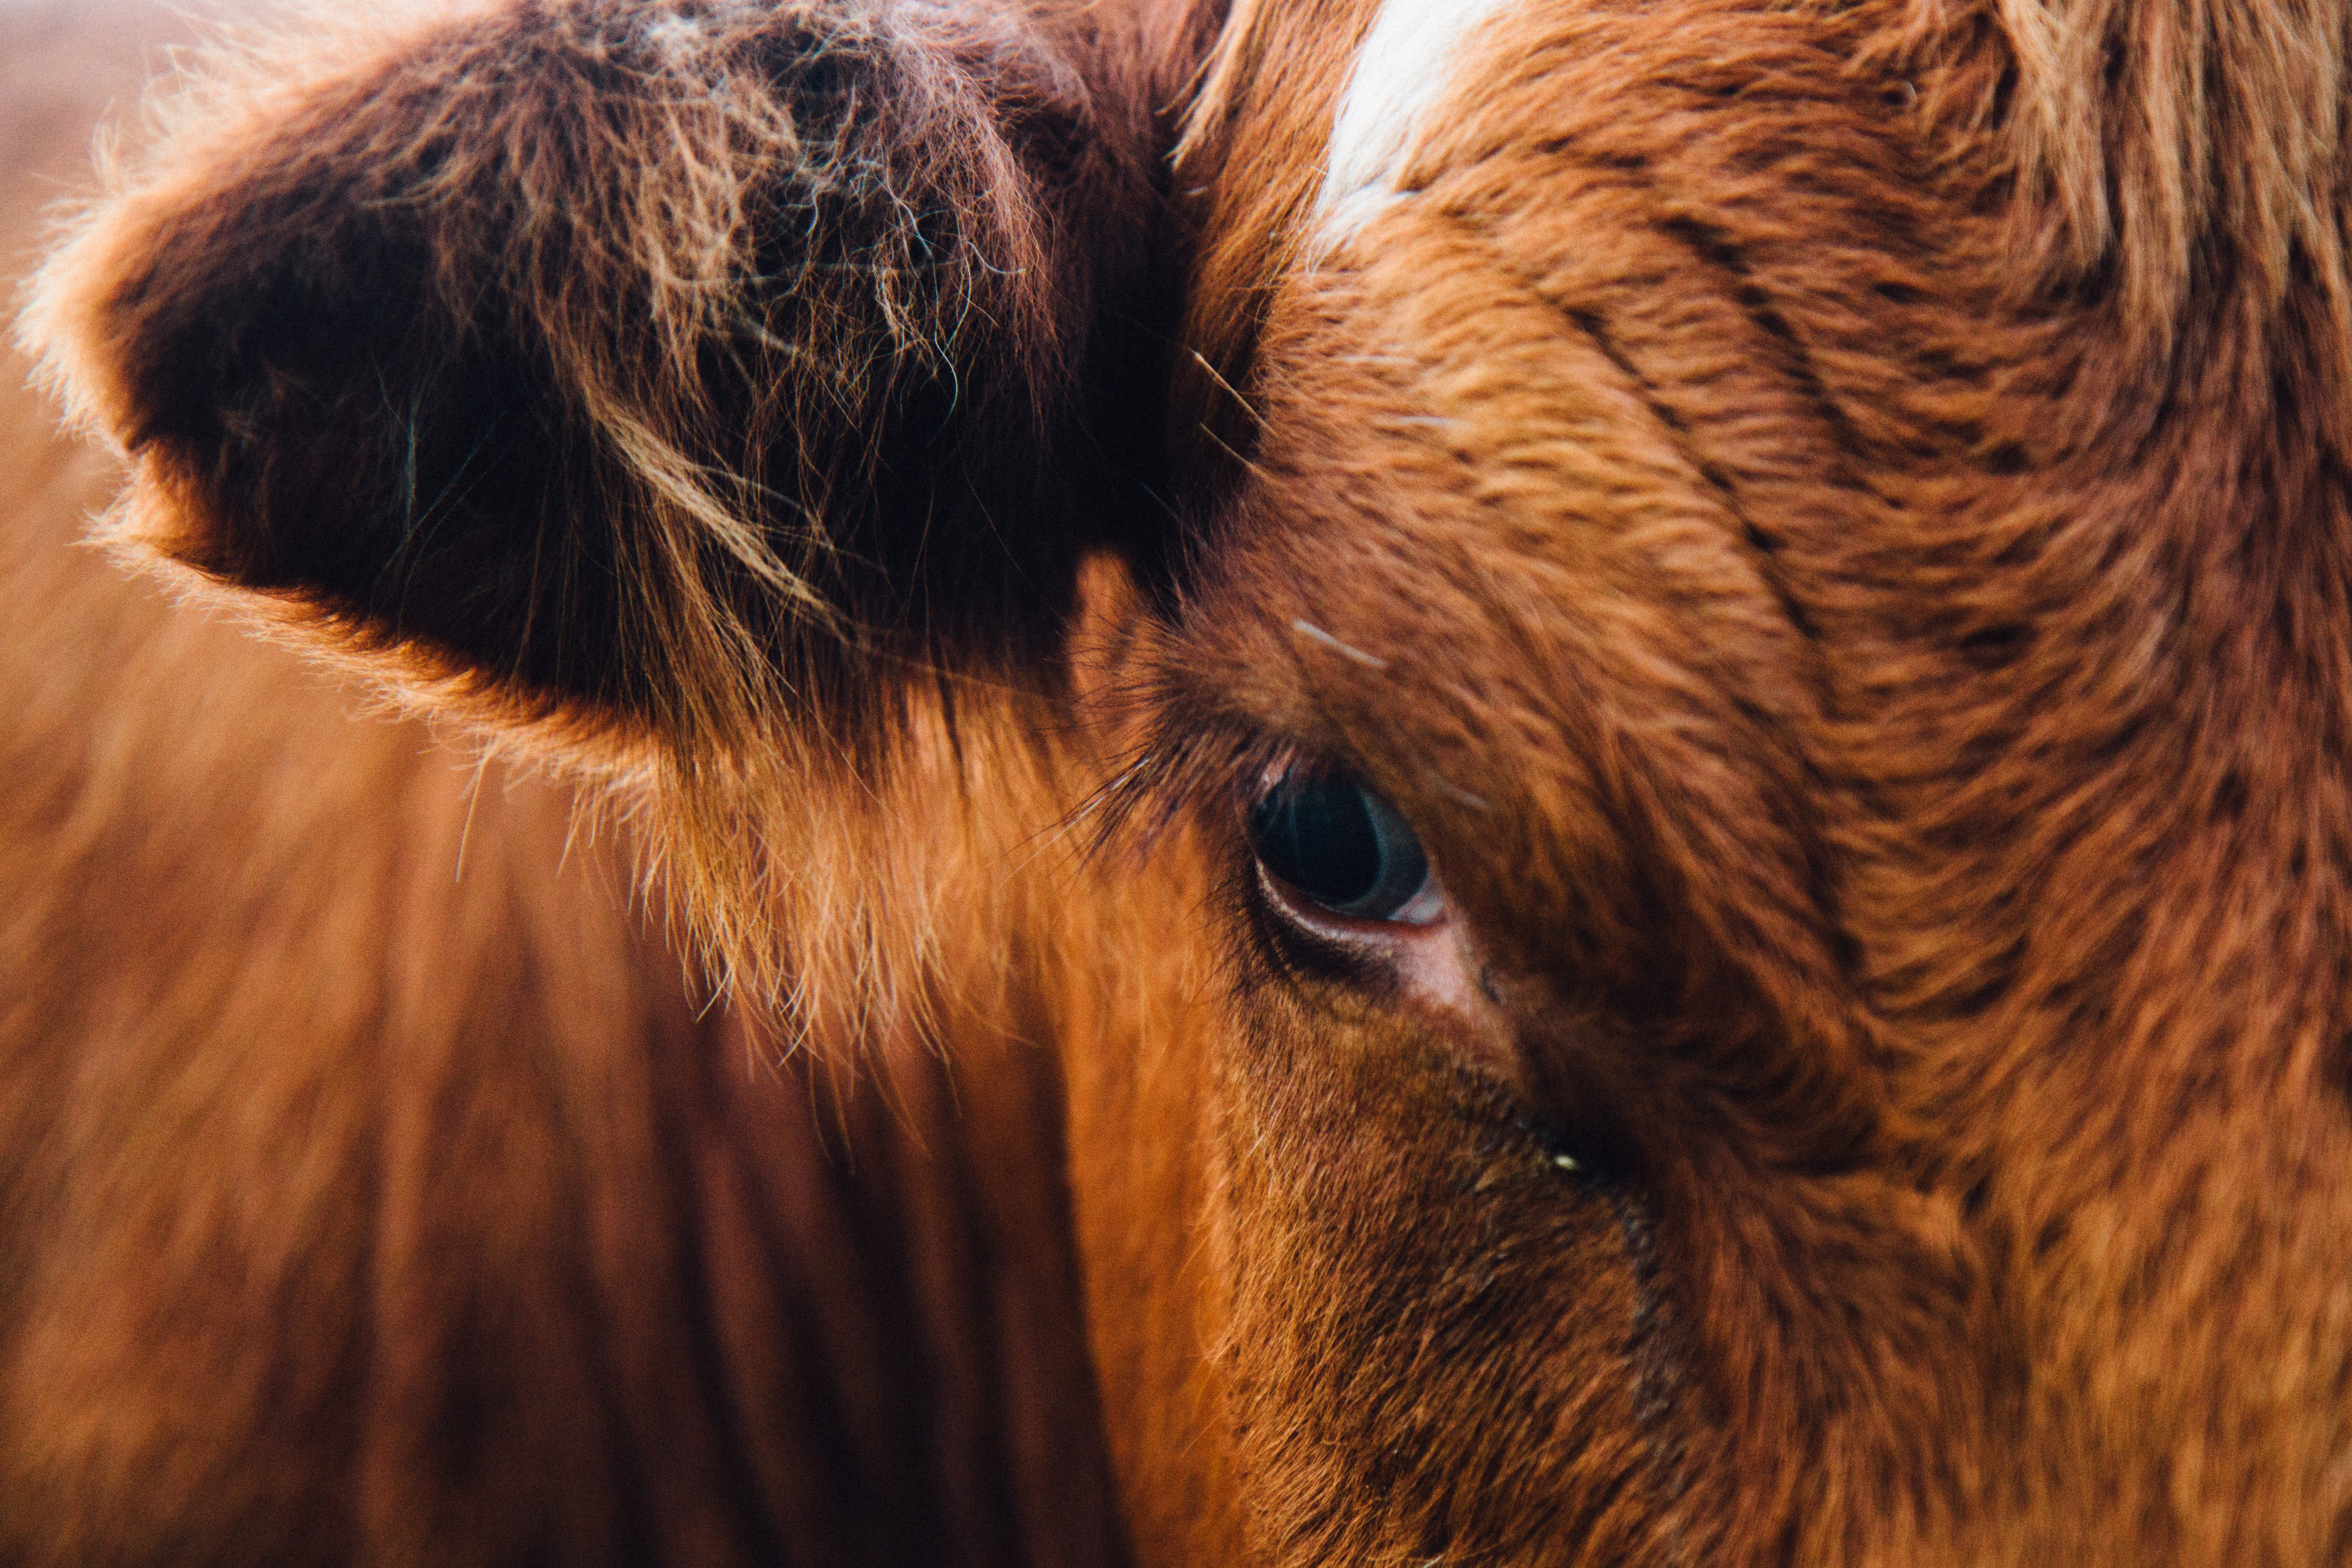 Macro of a brown hairy cow with its eye and ear in focus